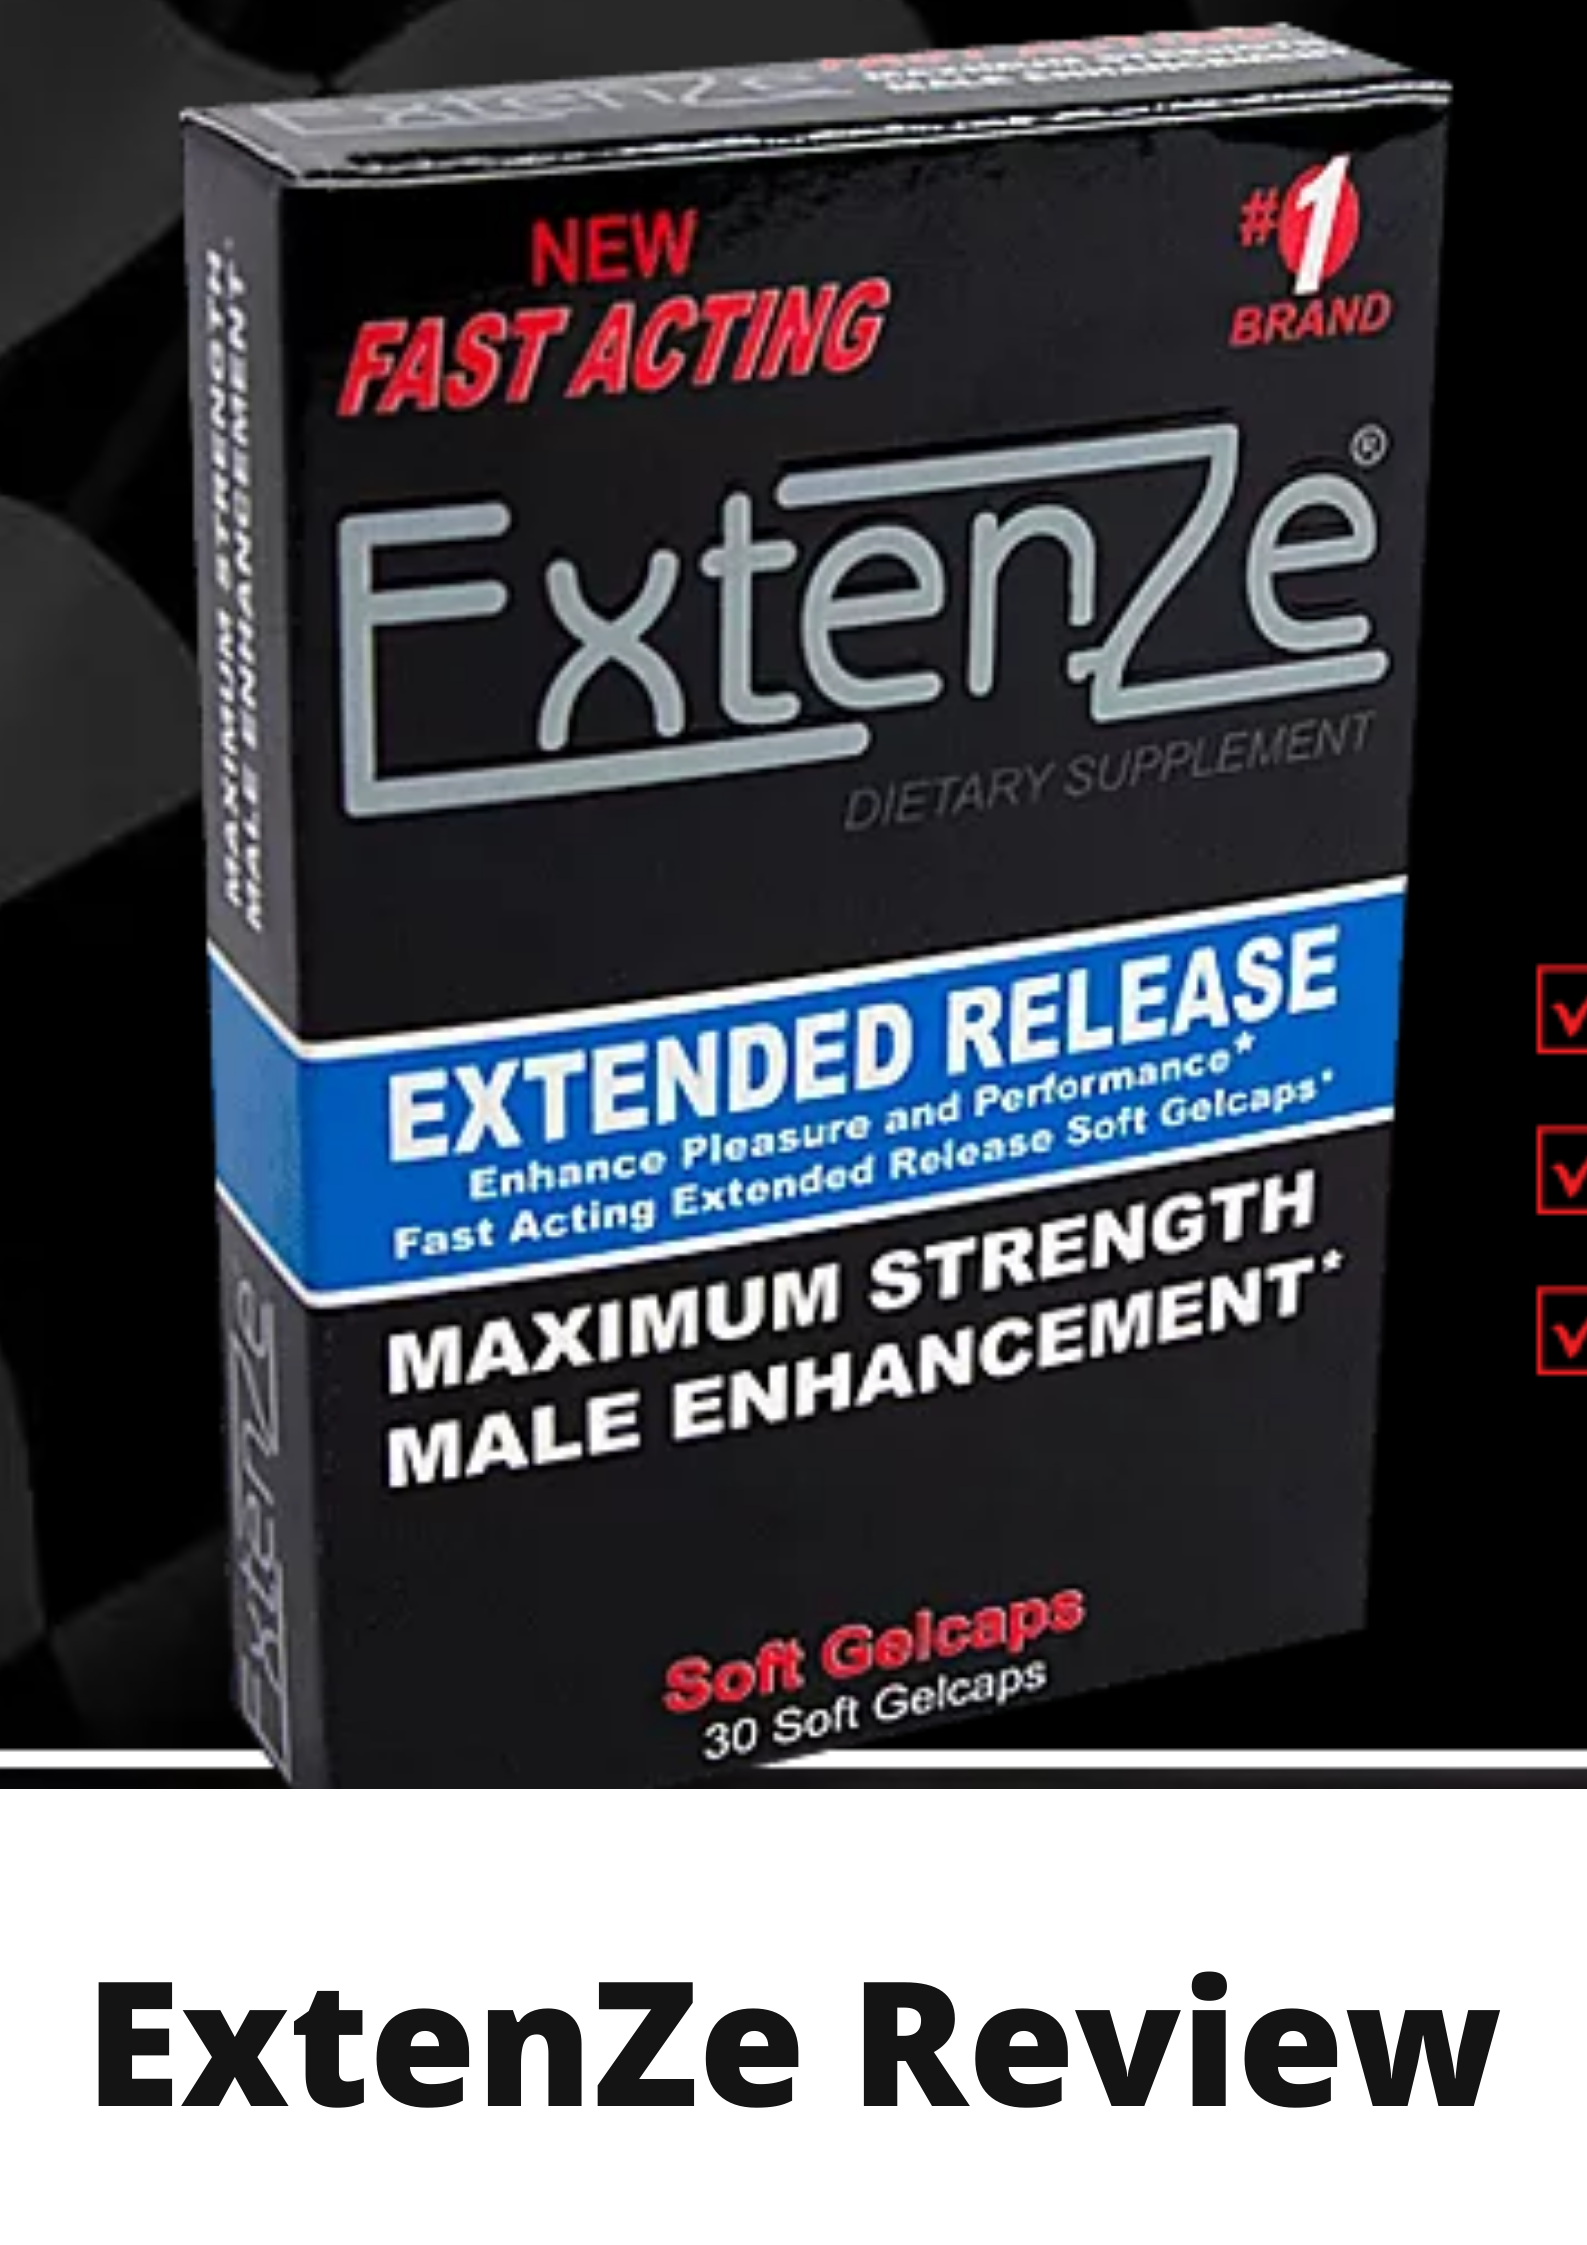 Extenze Pill Review-Should you be careful of this pill?